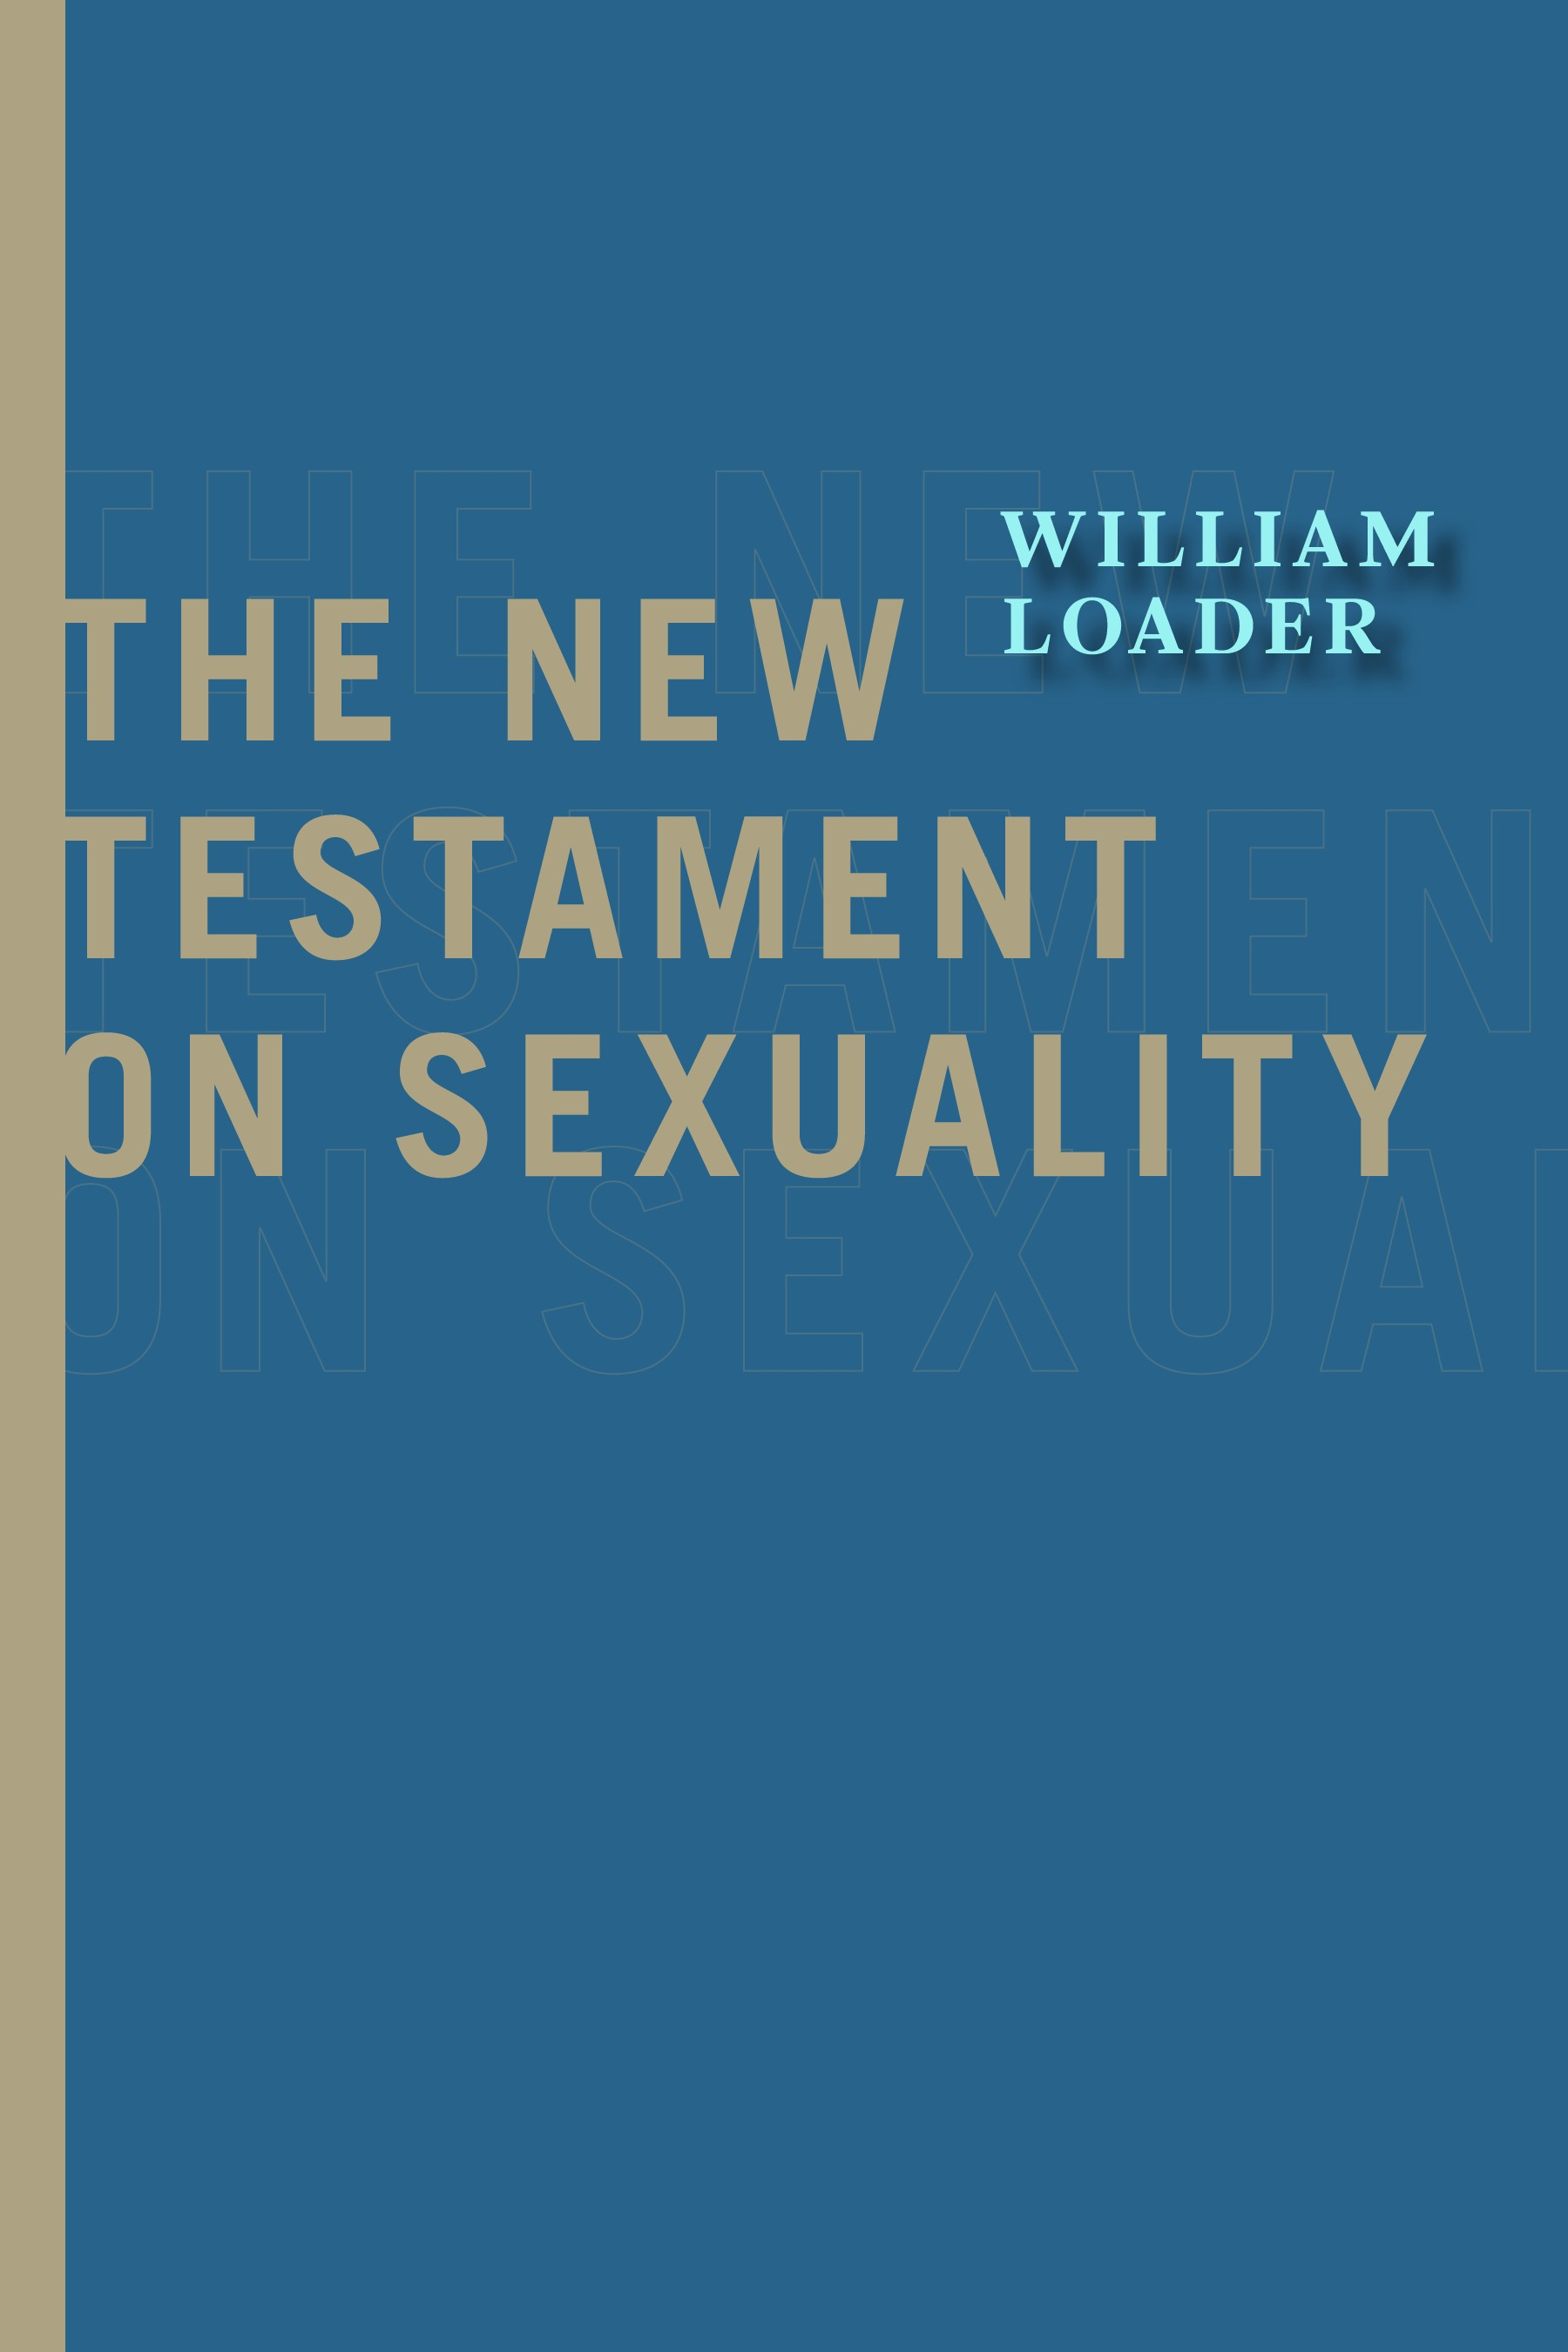 The New Testament on Sexuality